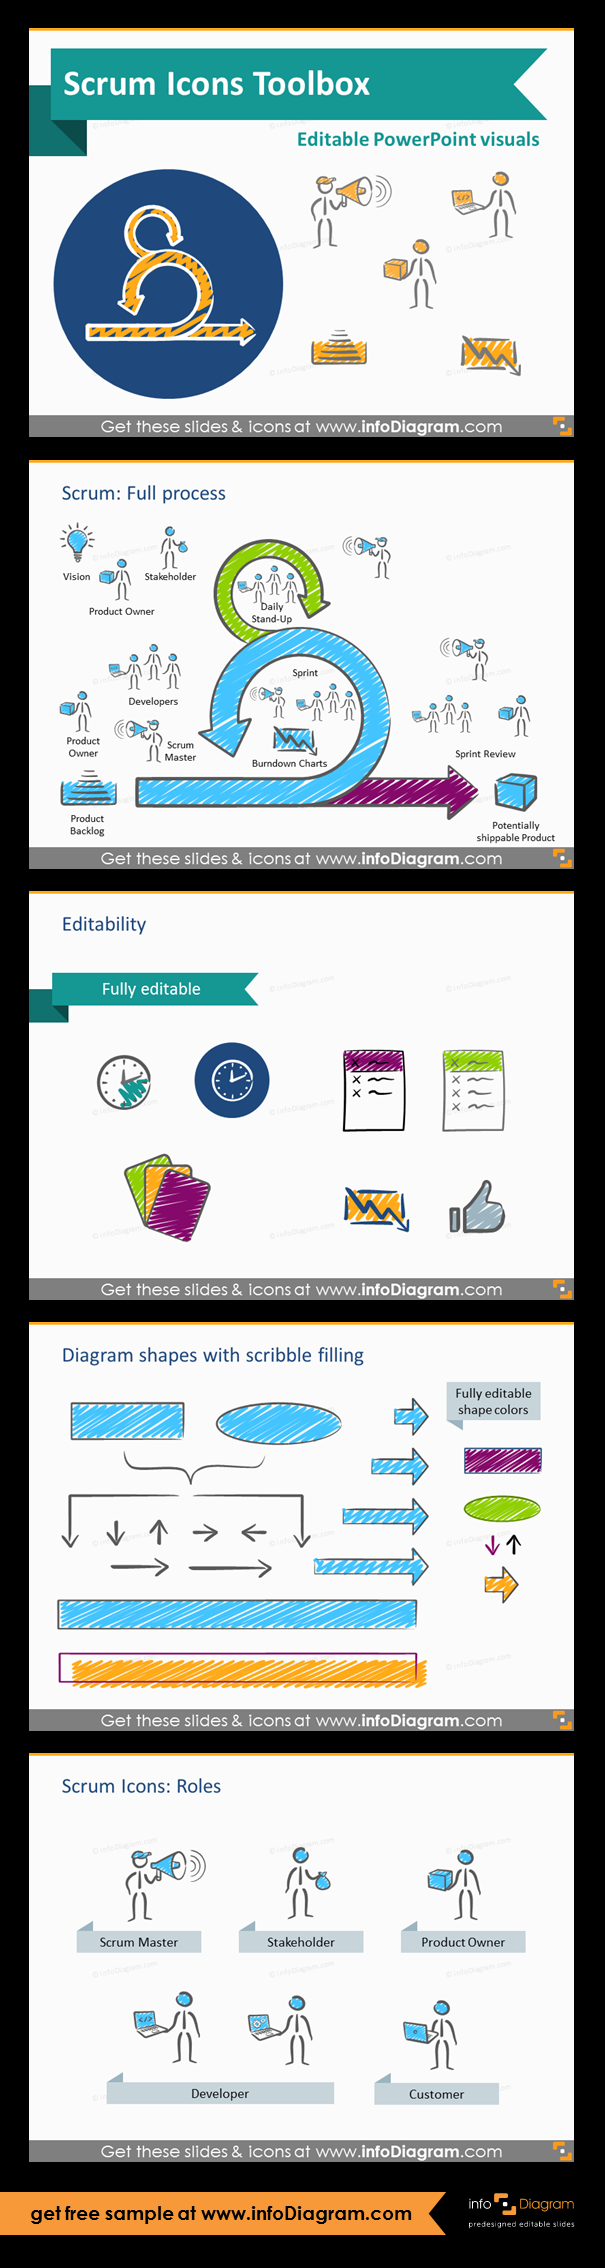 Scrum Process And Artefacts Presentation Template Ppt Icons Flow Diagram Shapes Flowchart Roles Master Stakeholder Product Owner Developer Customer Example Of Editability